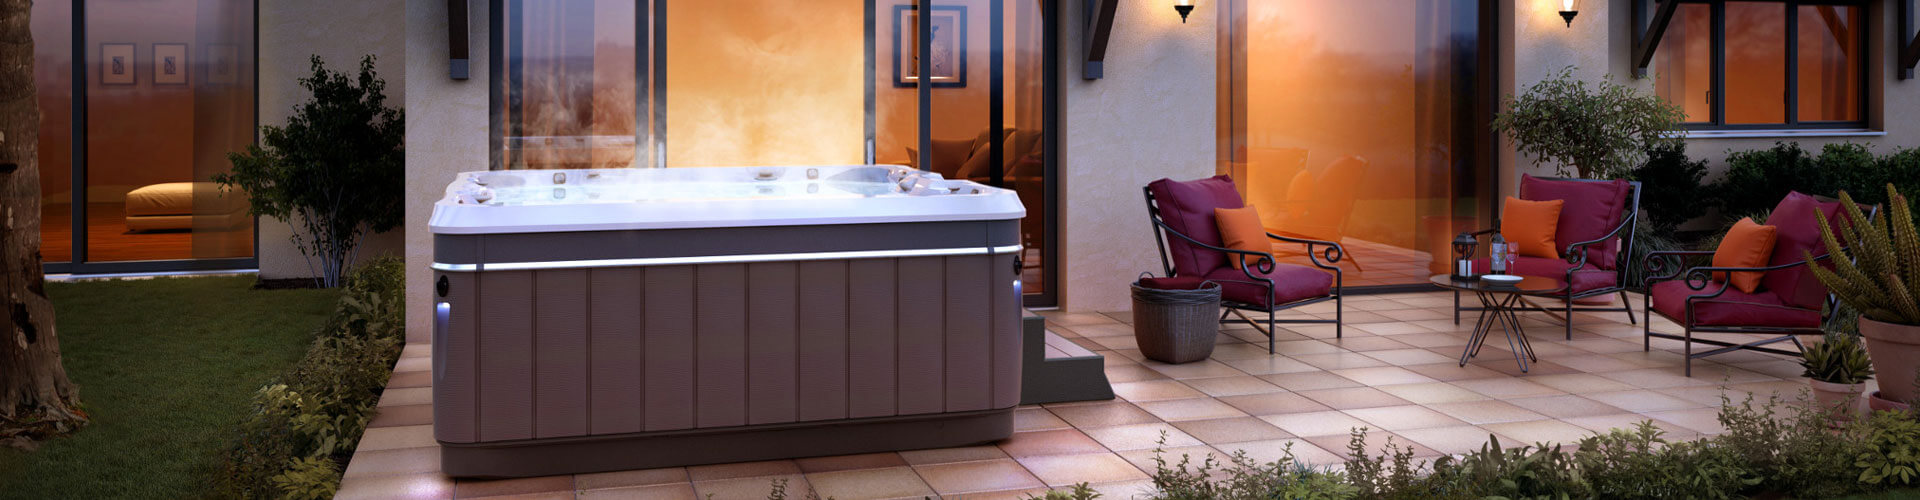 3 Ways to Reduce Joint Pain in a Spa – Hot Tubs Flagstaff